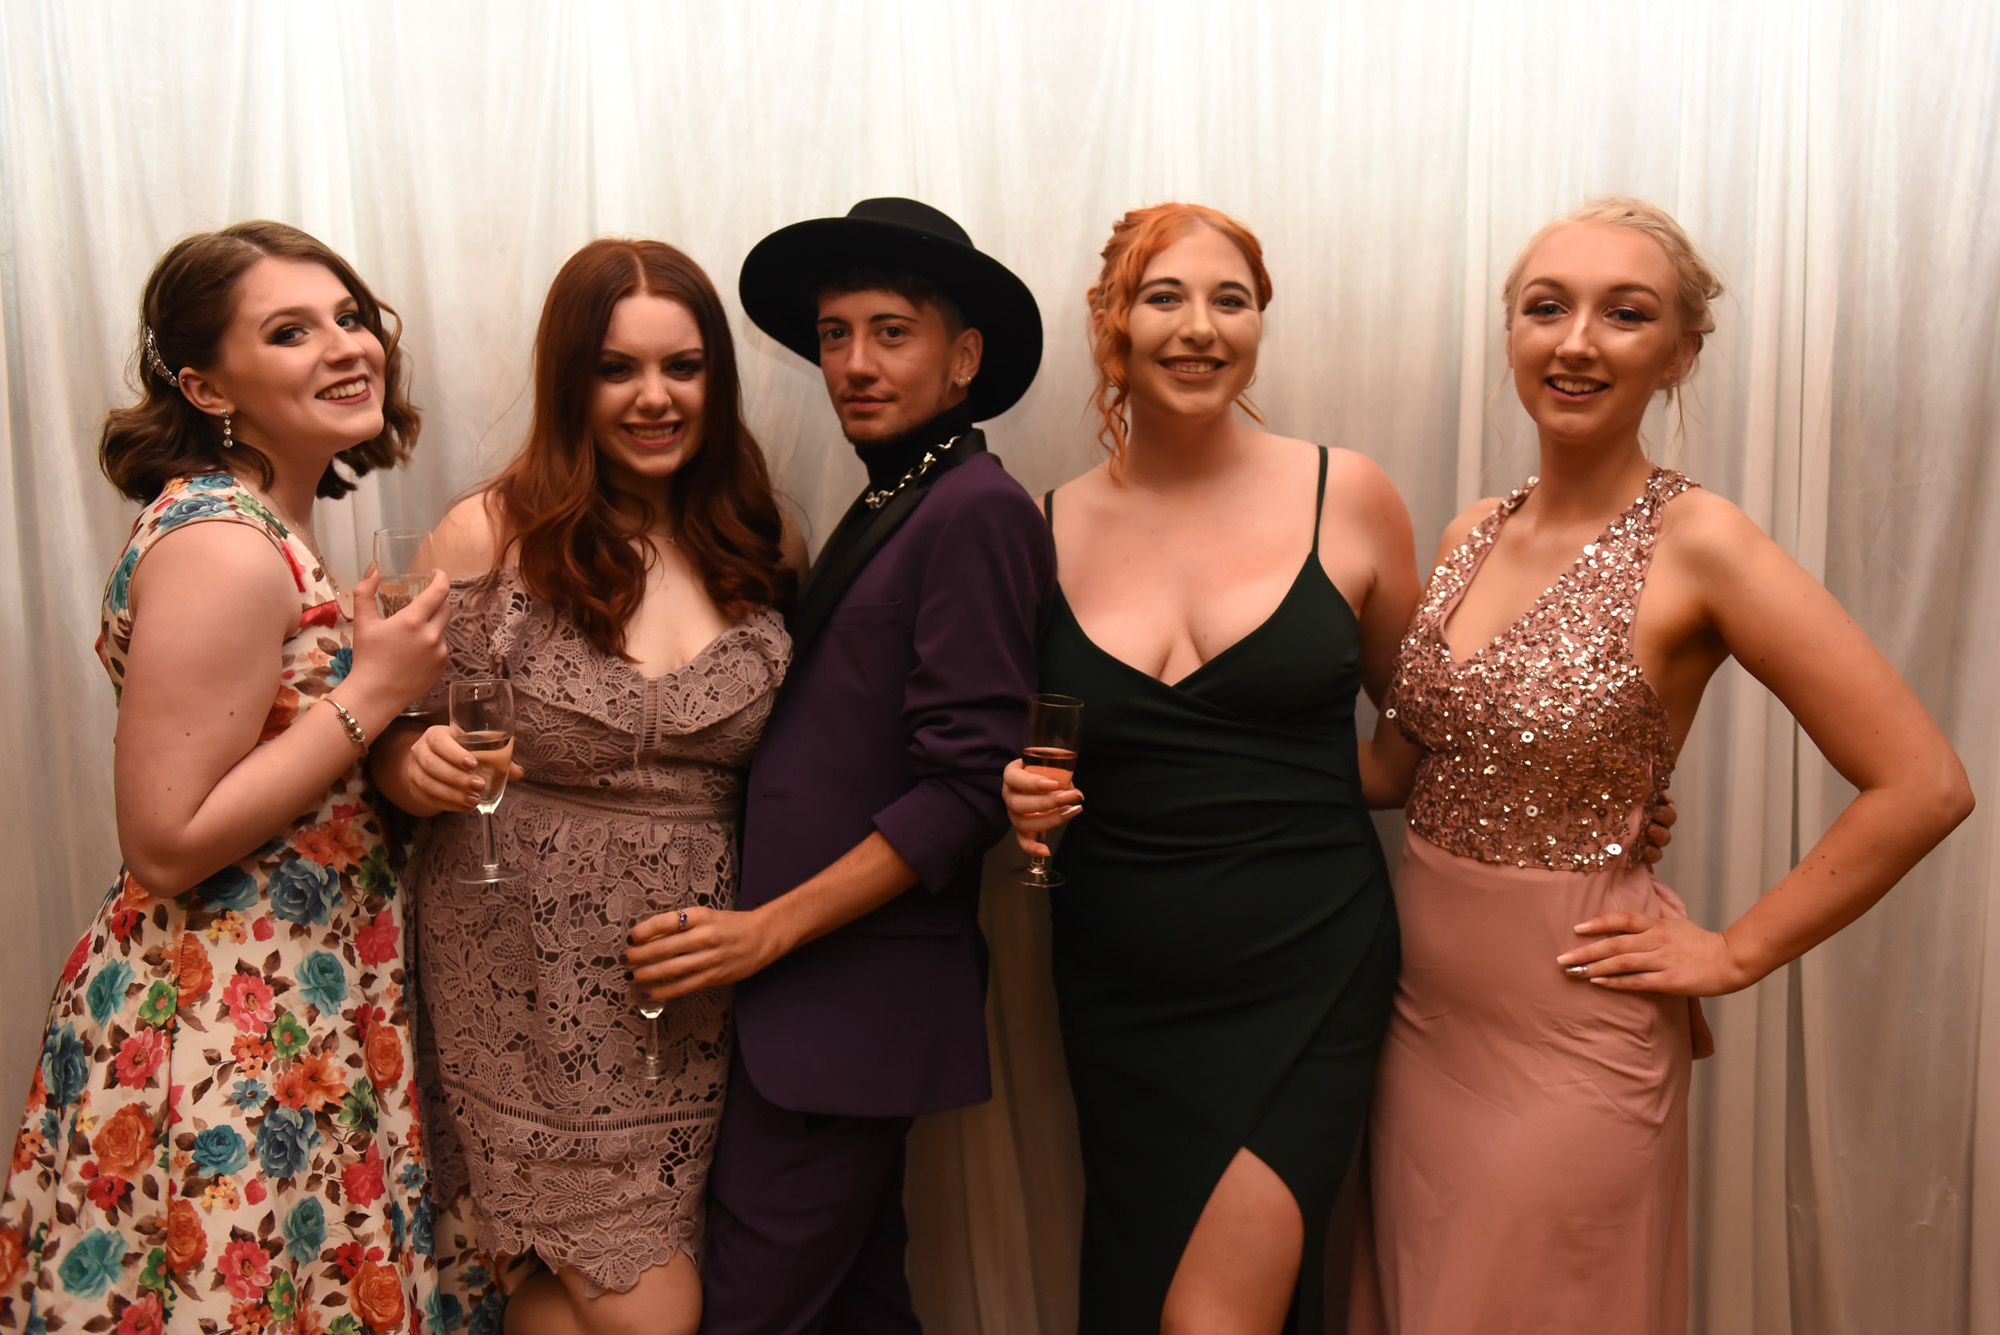 UCLAN_MT_BALL_2019_39.jpg